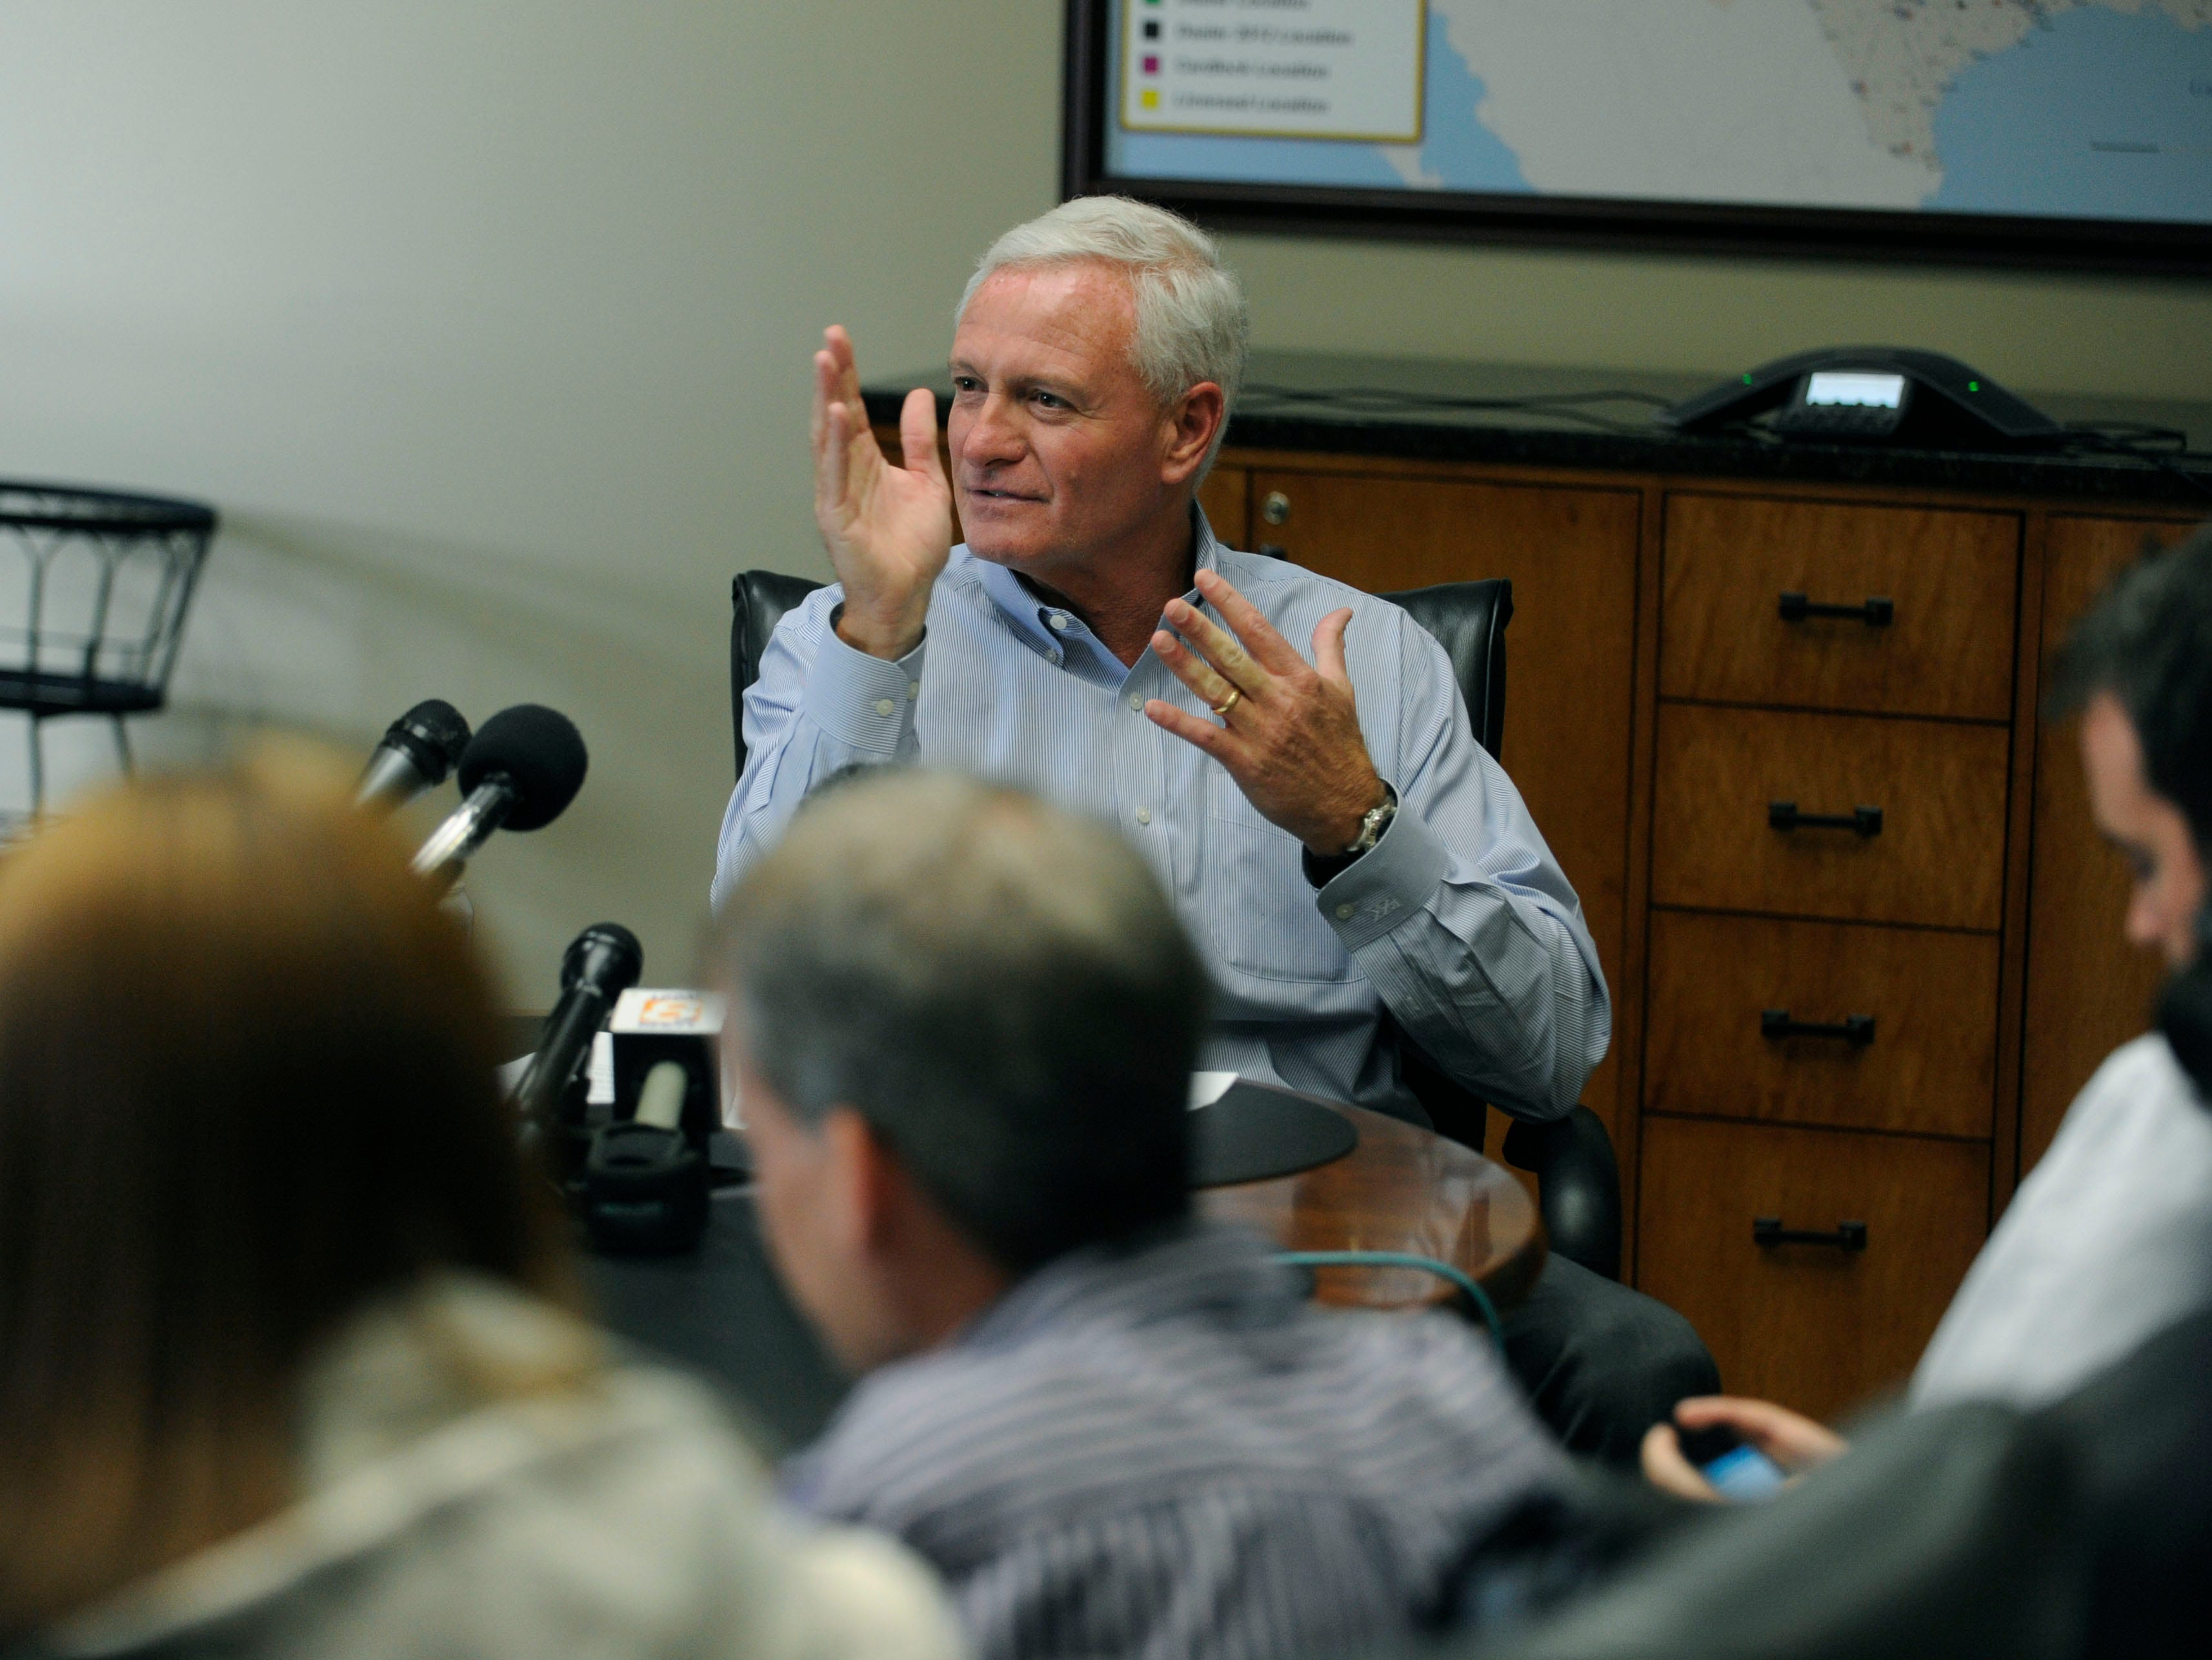 Pilot CEO Jimmy Haslam during a press conference Friday, Apr. 19, 2013 at the corporate office in Knoxville.